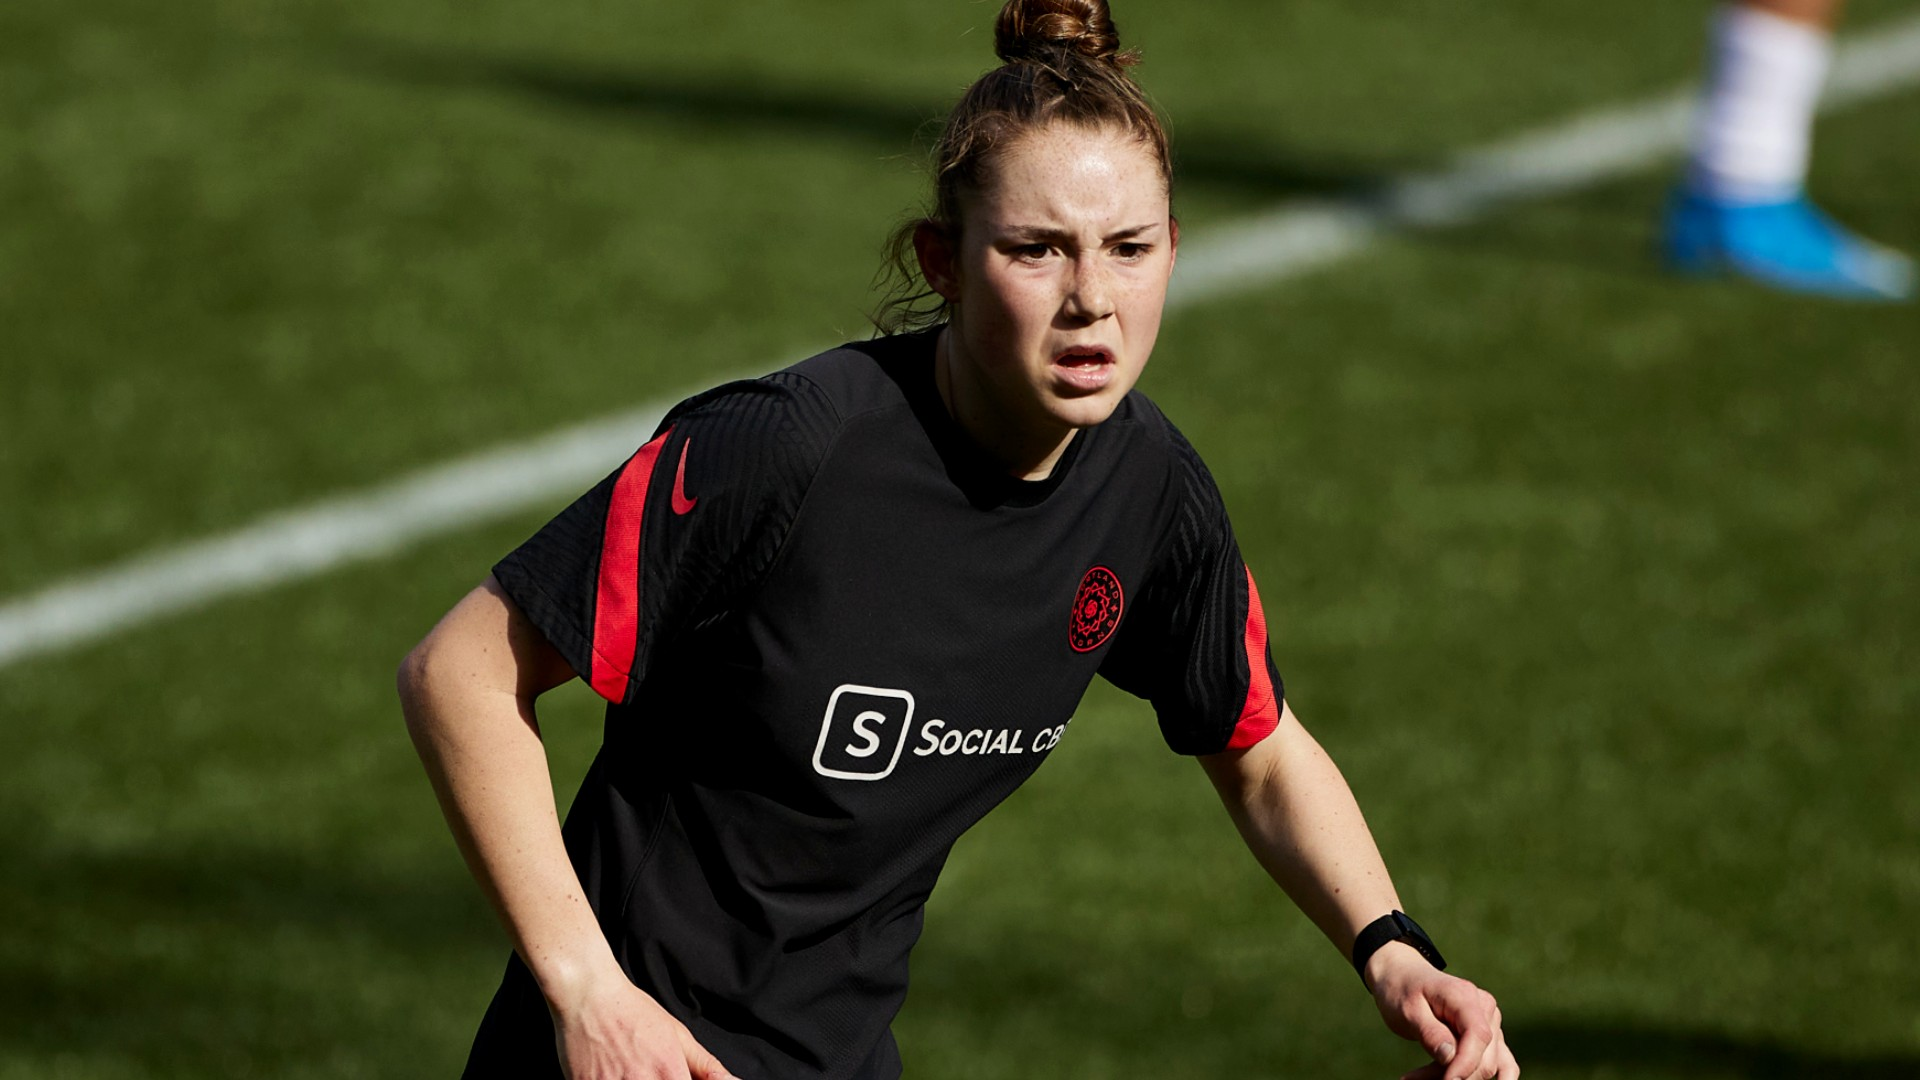 Olivia Moultrie, 15, becomes youngest player to debut in NWSL professional soccer with Portland Thorns